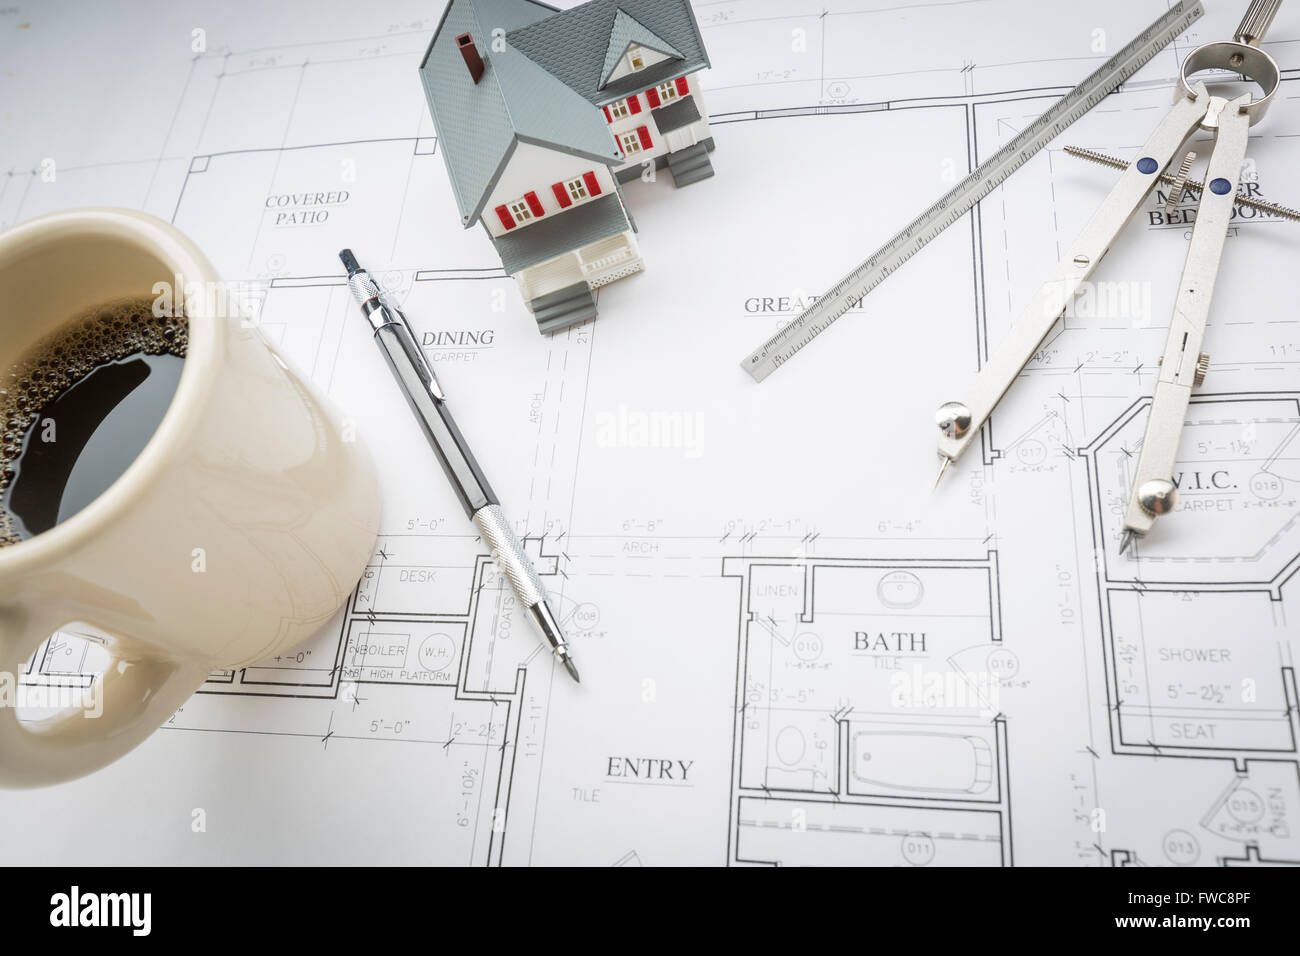 Model Home, Cup of Coffee, Pencil, Ruler and Compass Resting